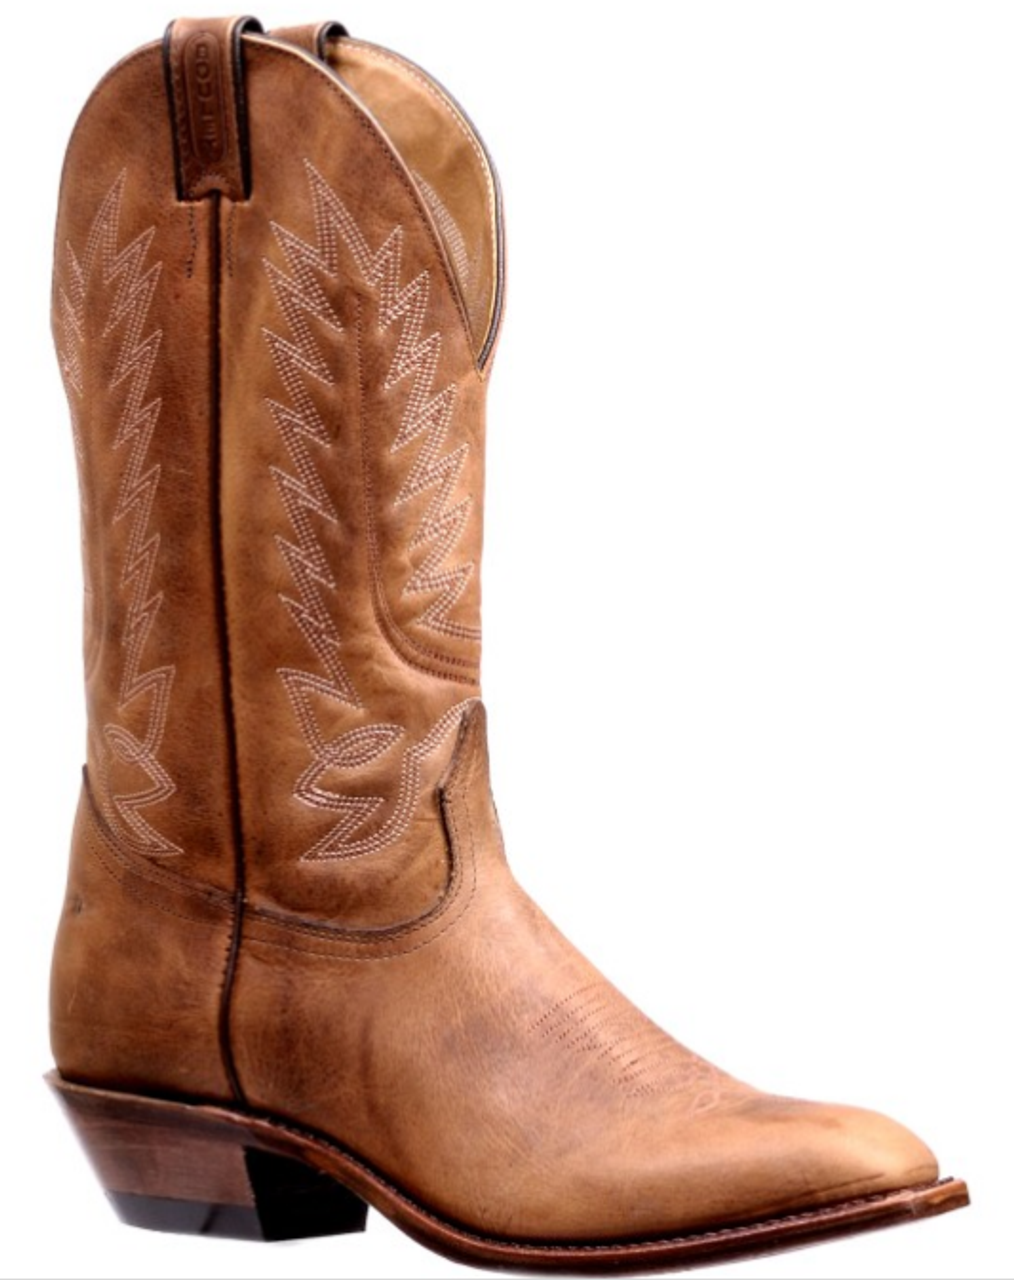 purchase authentic official sale Buy Authentic Men's Boulet Bison Western Dress Toe Western Boot